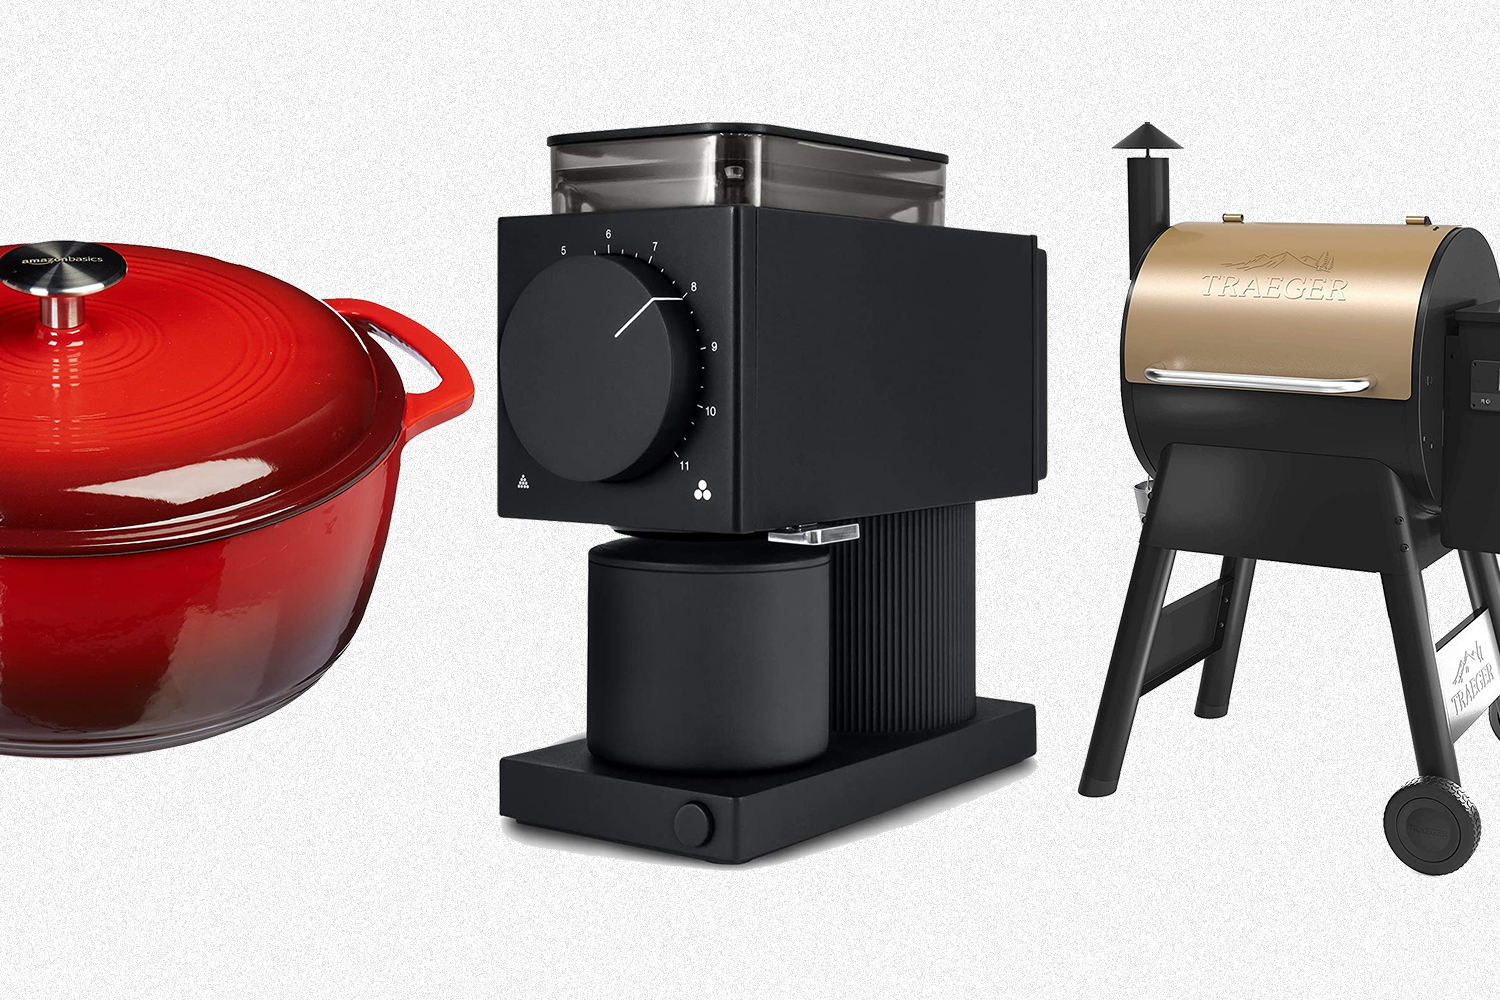 An Amazon Basics Dutch oven, Fellow's Ode brew grinder and a Traeger wood-pellet grill